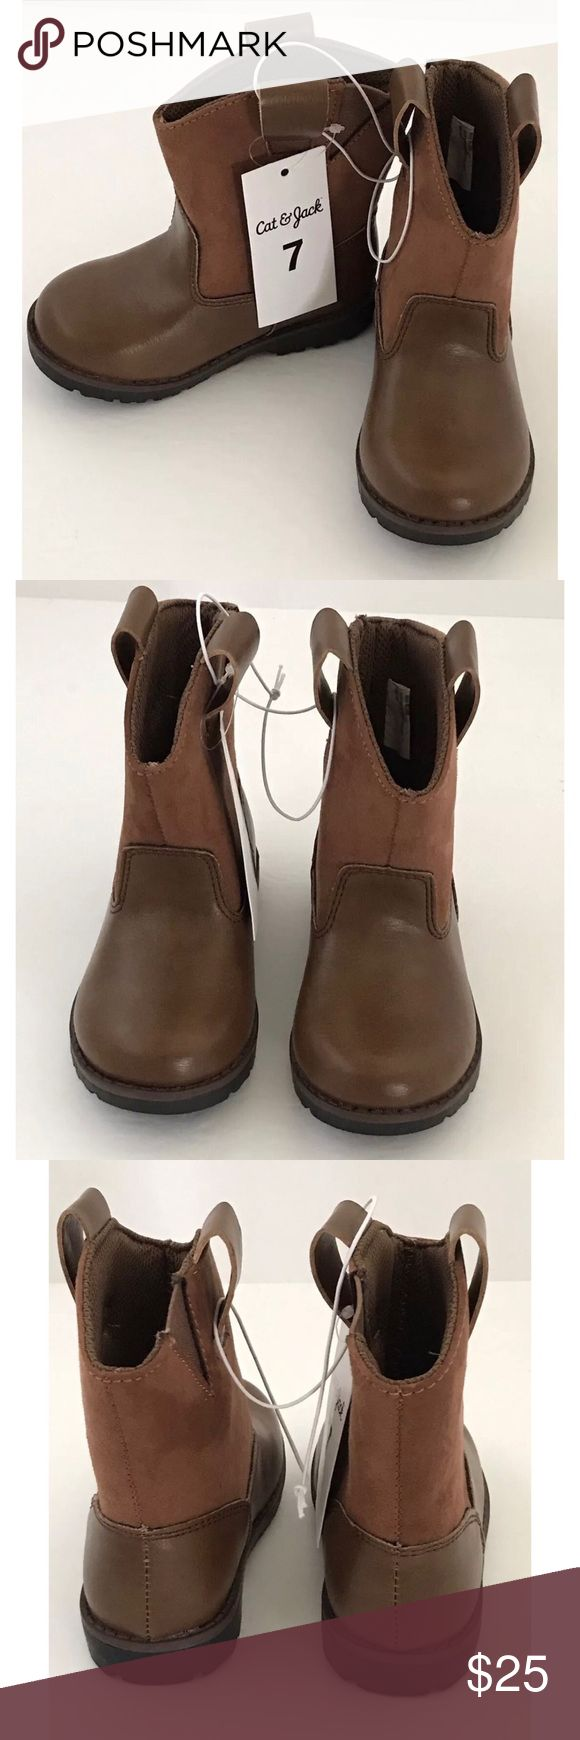 Cat & Jack Toddler Cowgirl/Cowboy Boots Cat & Jack Brown Style: Hunter Size 7 These boots are brand new. They have elastic on the inside for easy on & off access. Perfect for your little Cowgirl or Cowboy! Shoes Boots